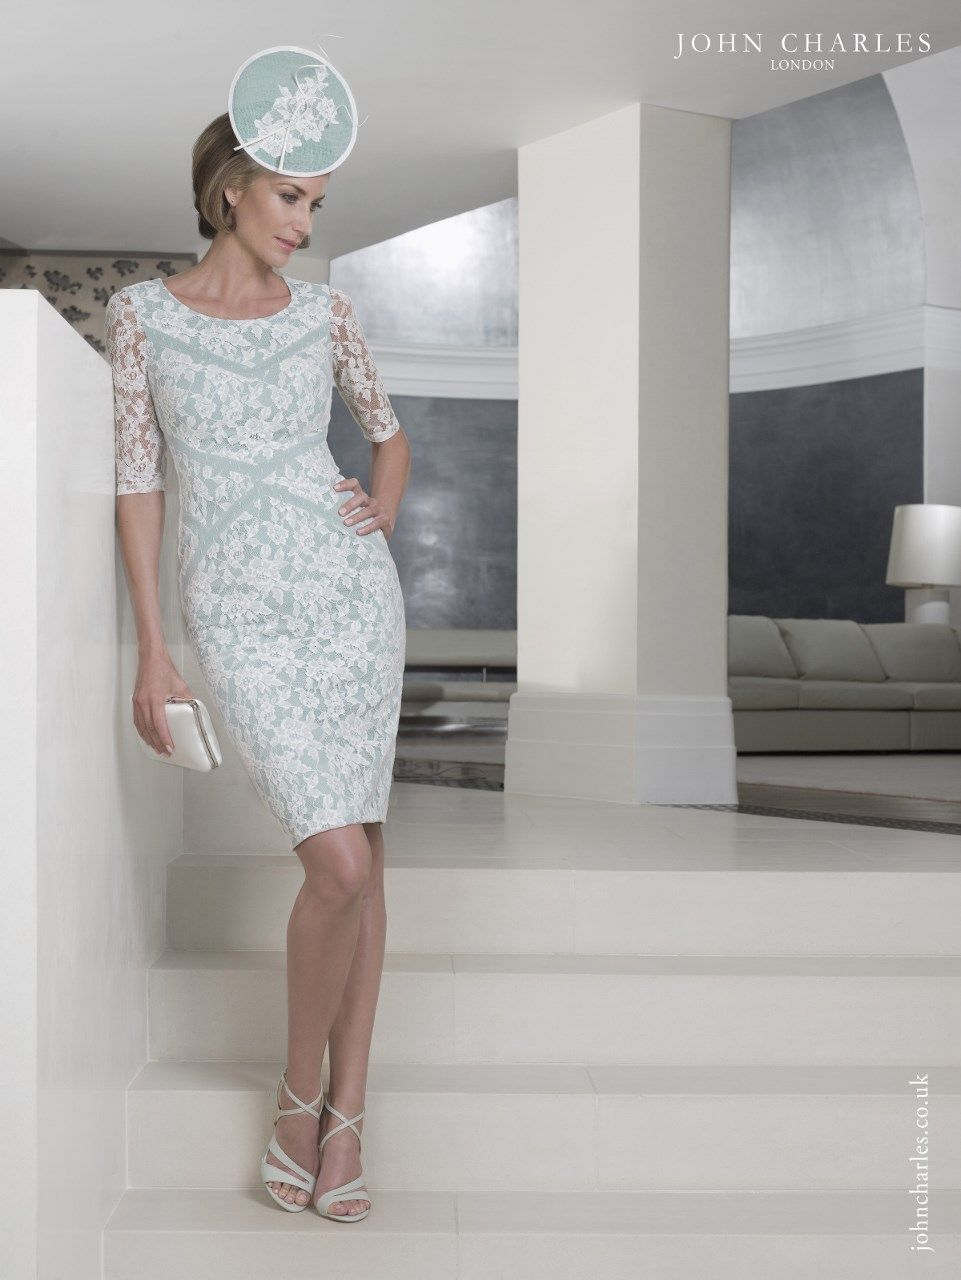 New Season From John Charles Mother Of The Bride Outfit